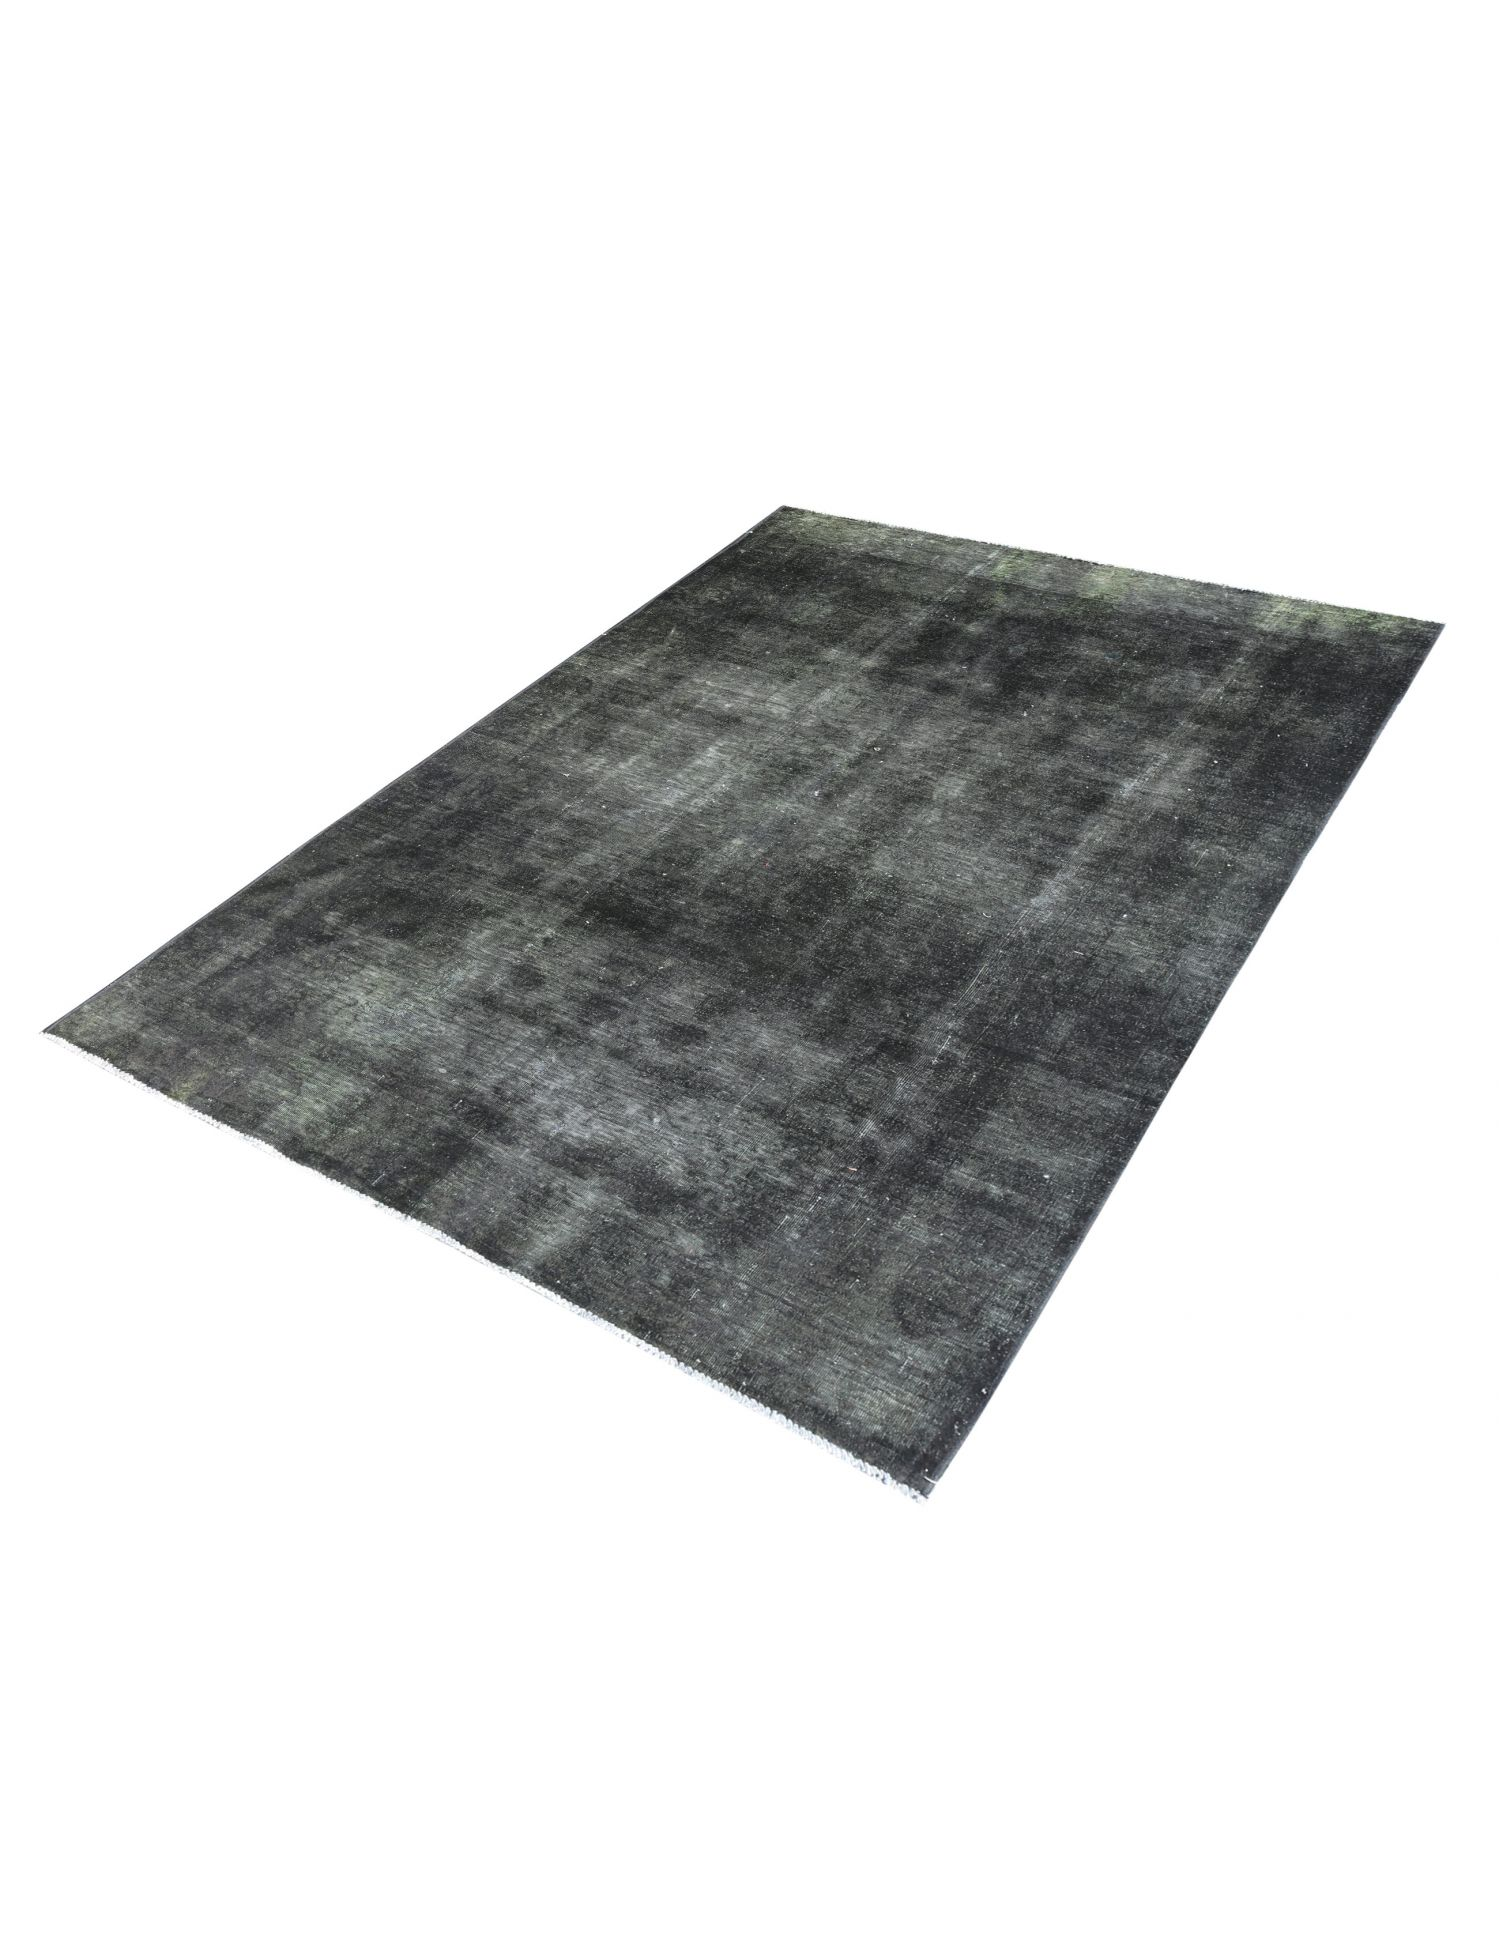 Vintage Carpet  black <br/>266 x 184 cm